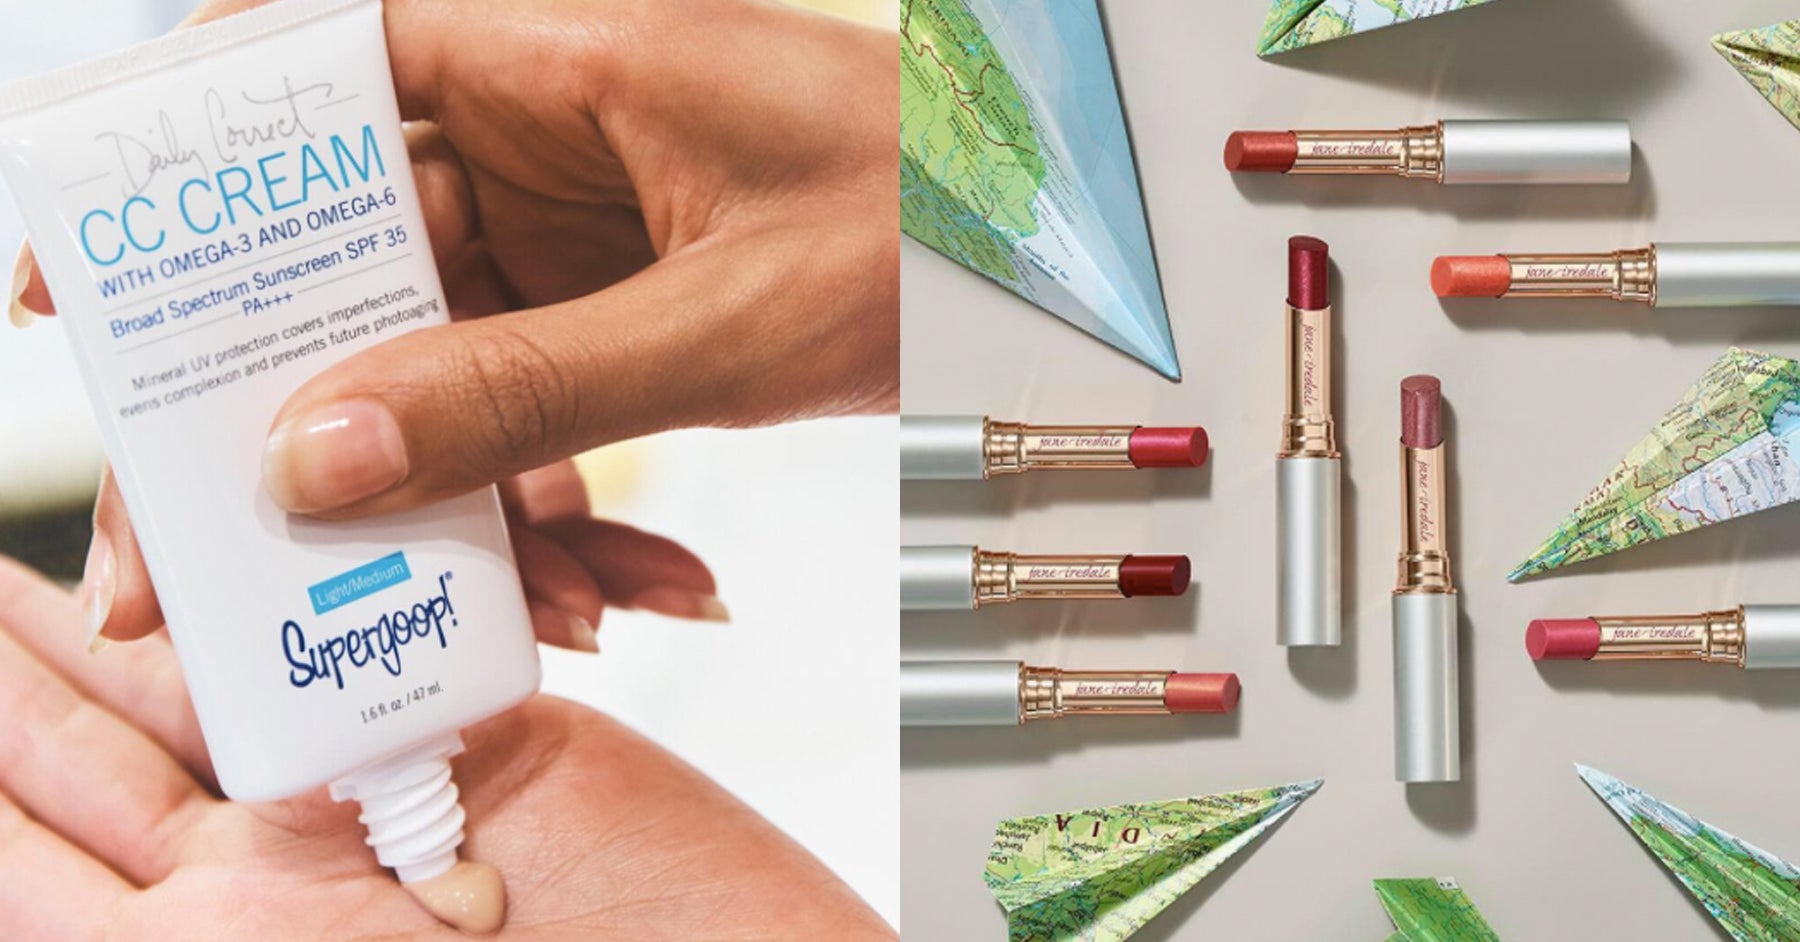 28 Incredible Products At Birchbox That People Actually Swear By